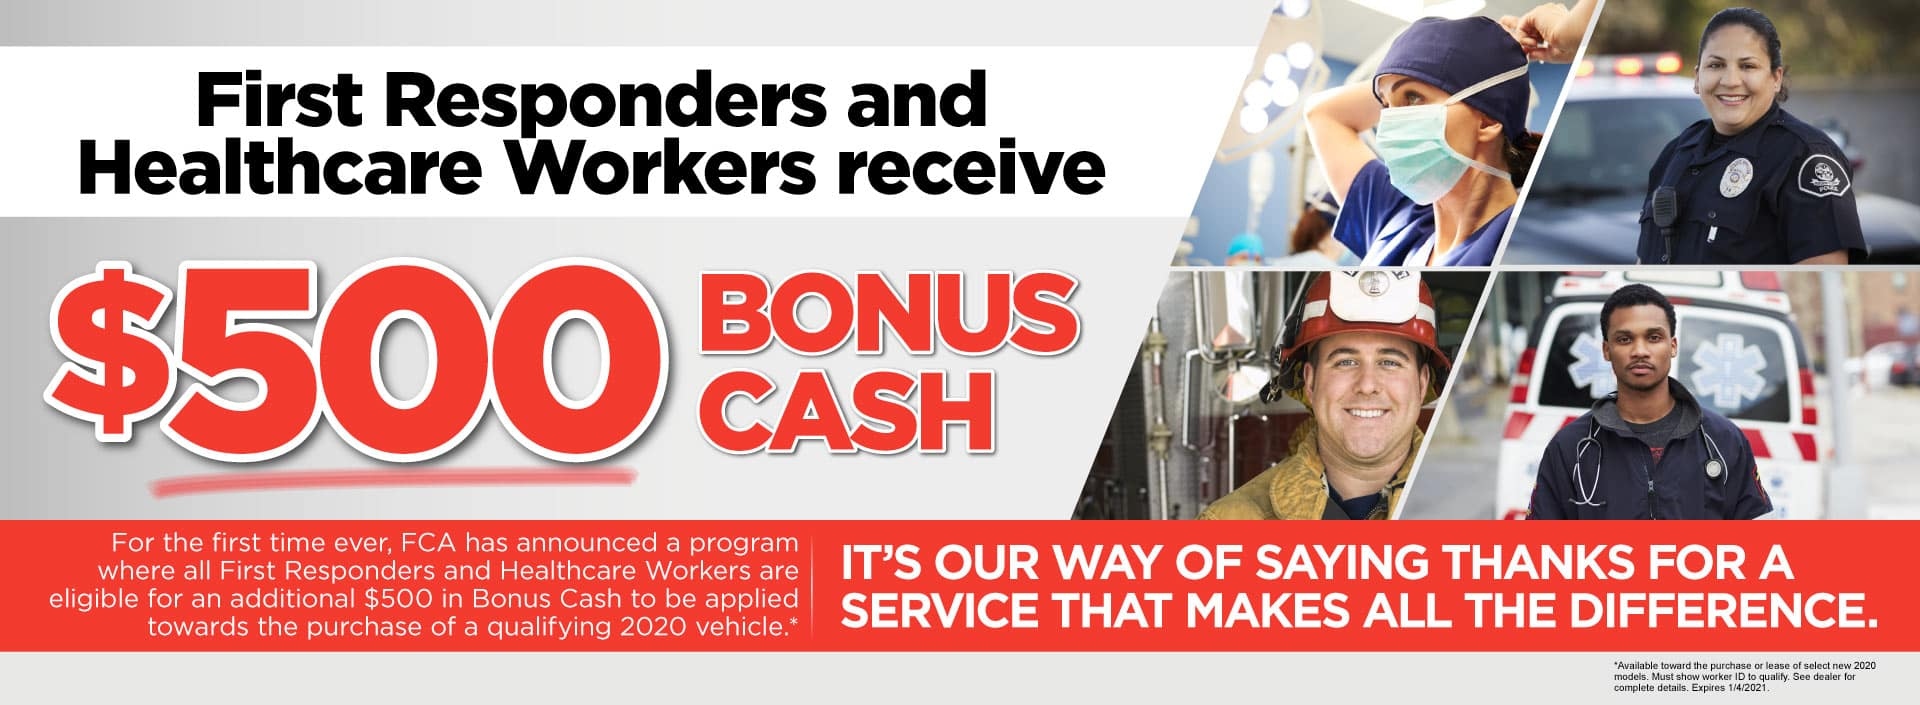 First Responders and Healthcare Workers receive $500 bonus cash towards the purchase of a qualifying 2020 vehicle